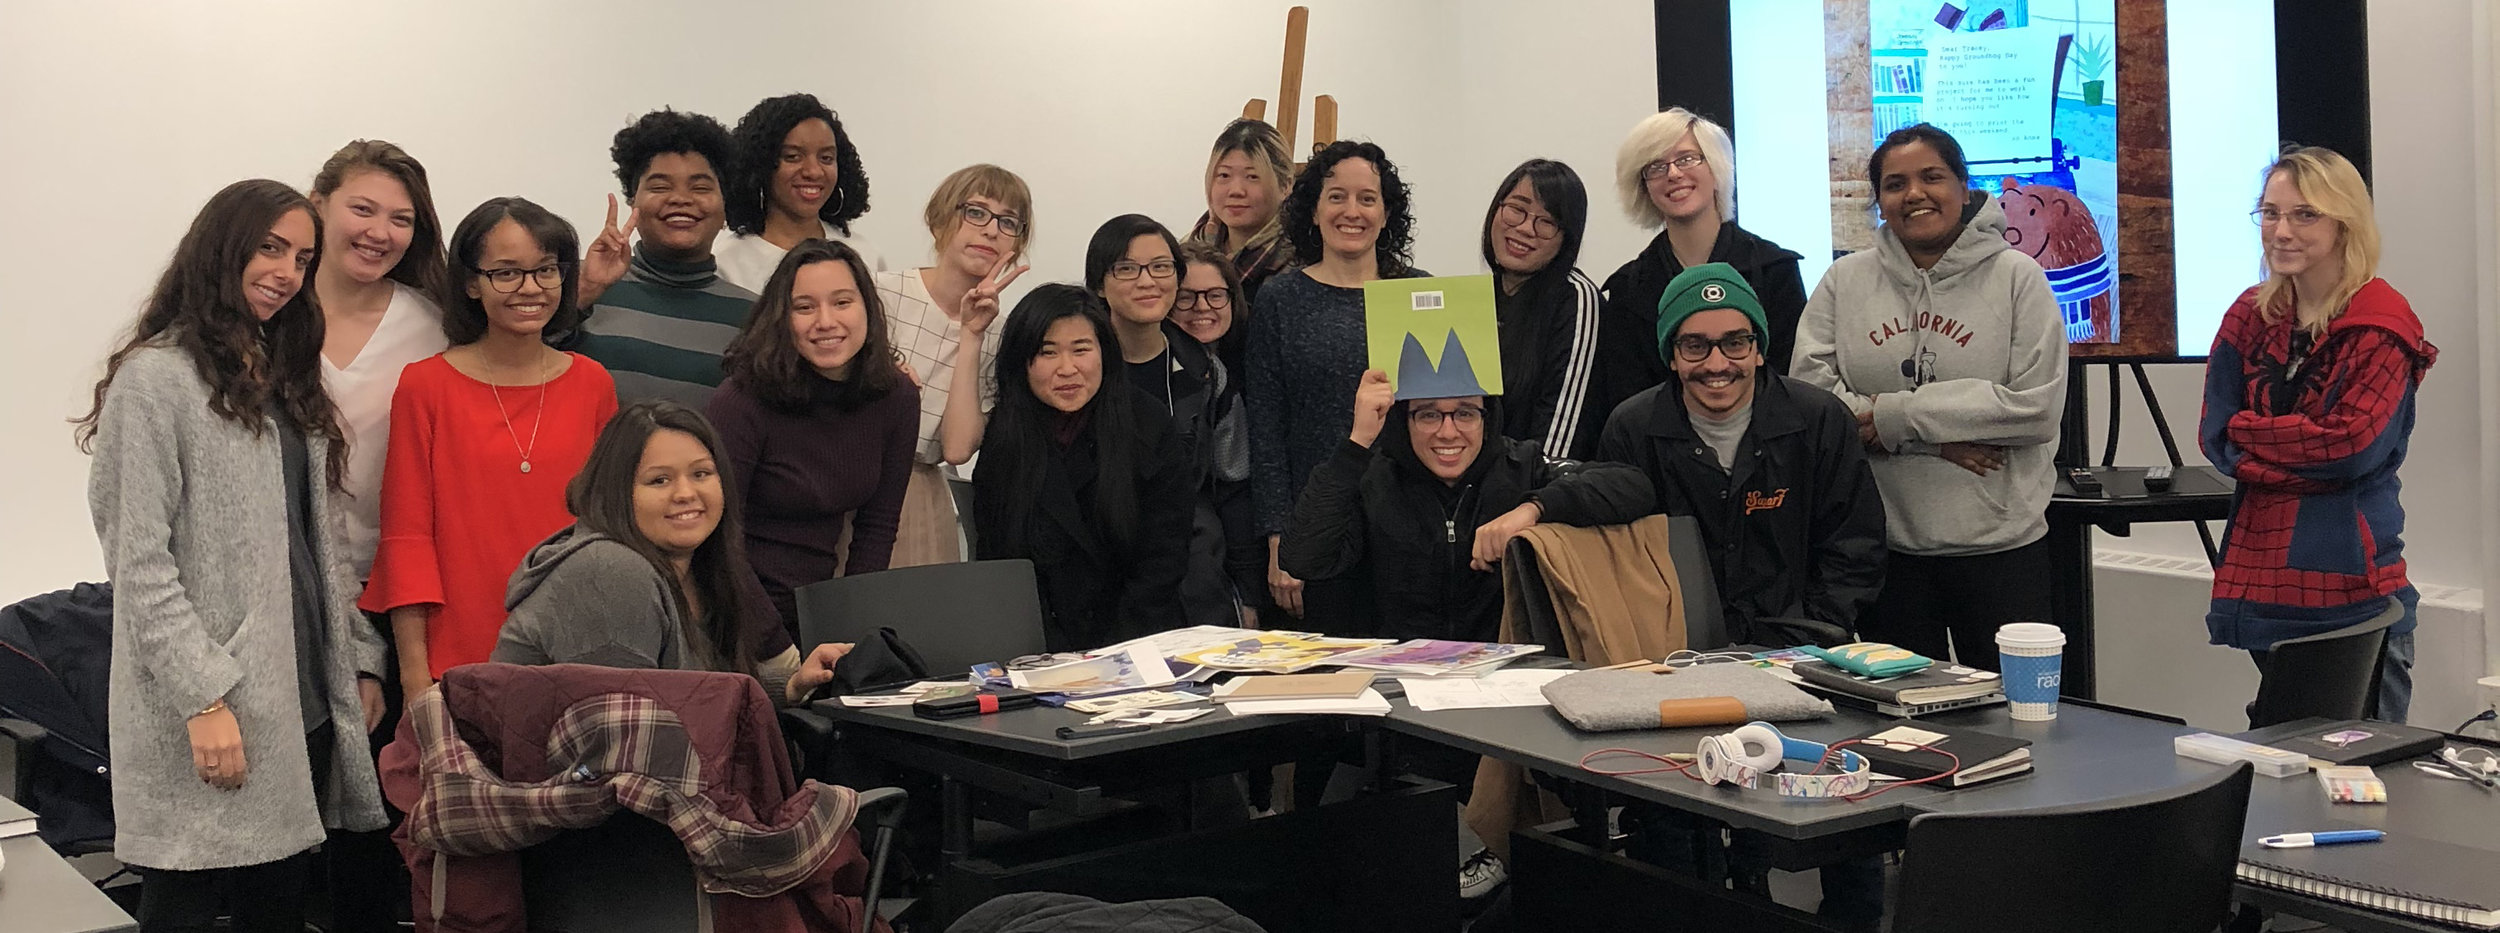 Presentation to illustration students at FiT.  (Photo courtesy of Hyesu Lee)